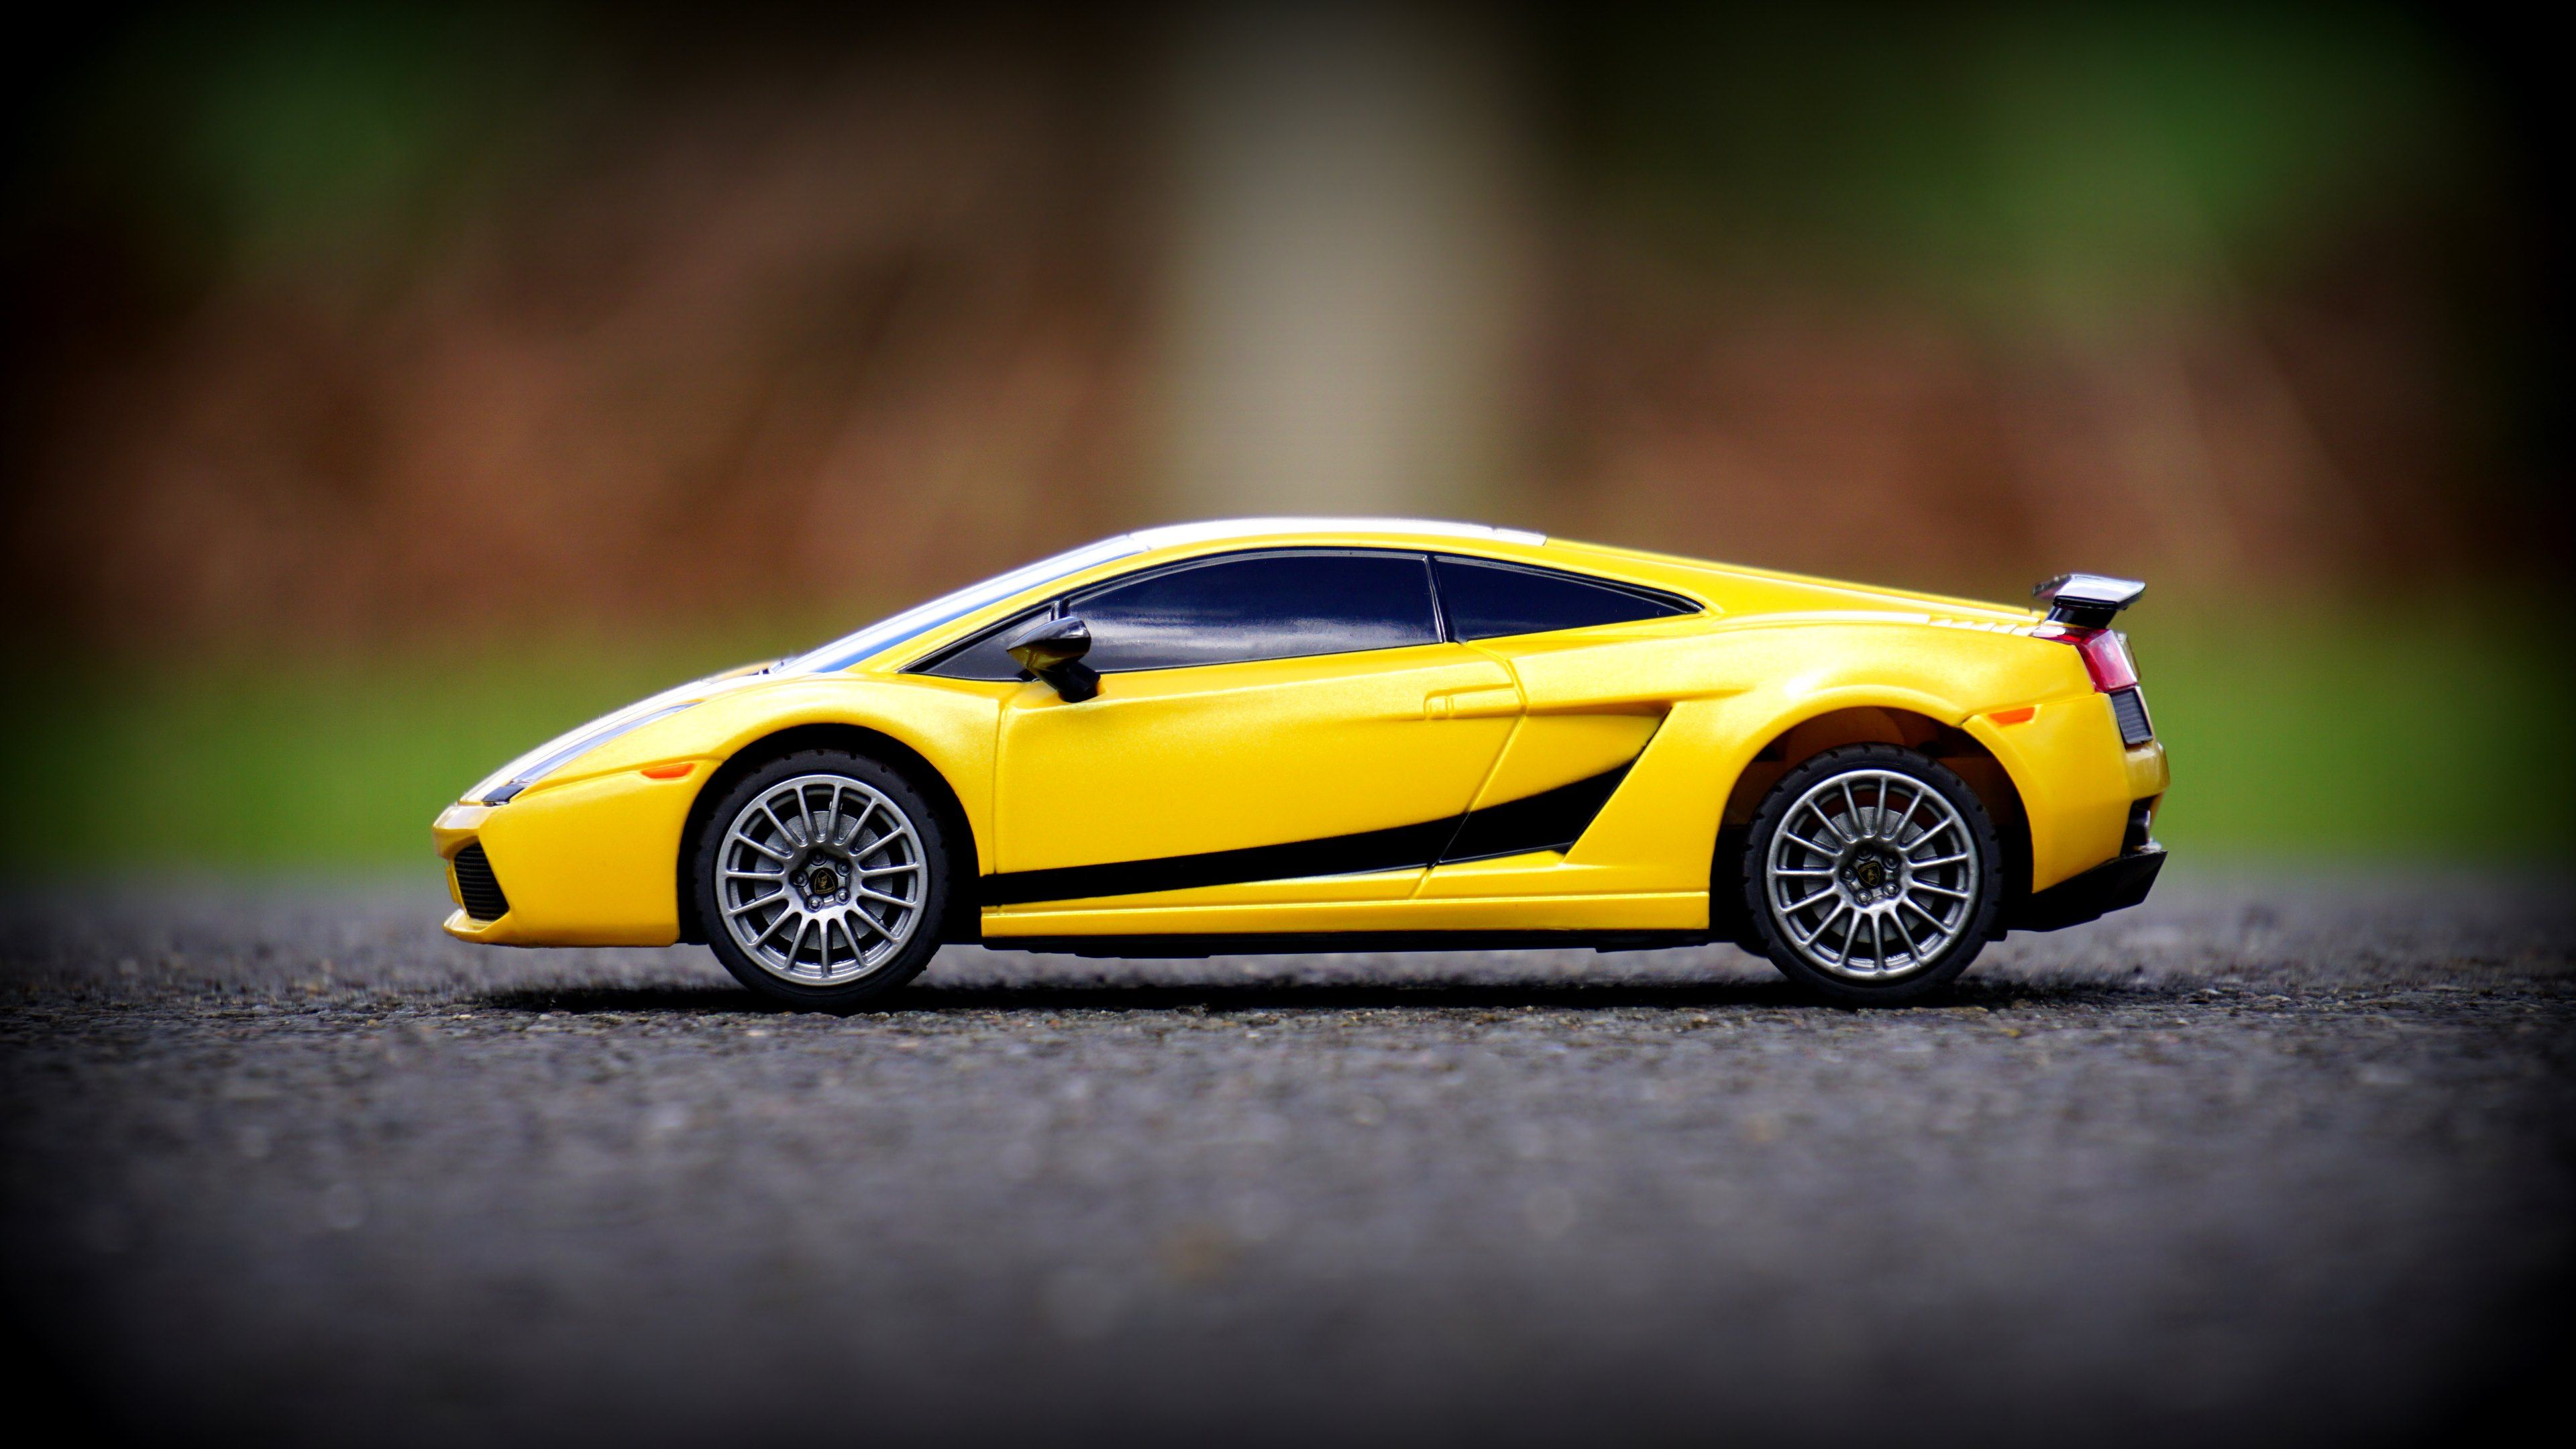 Lamborghini Toy Car K Wallpaper K Car Lamborghini Toy Wallpaper